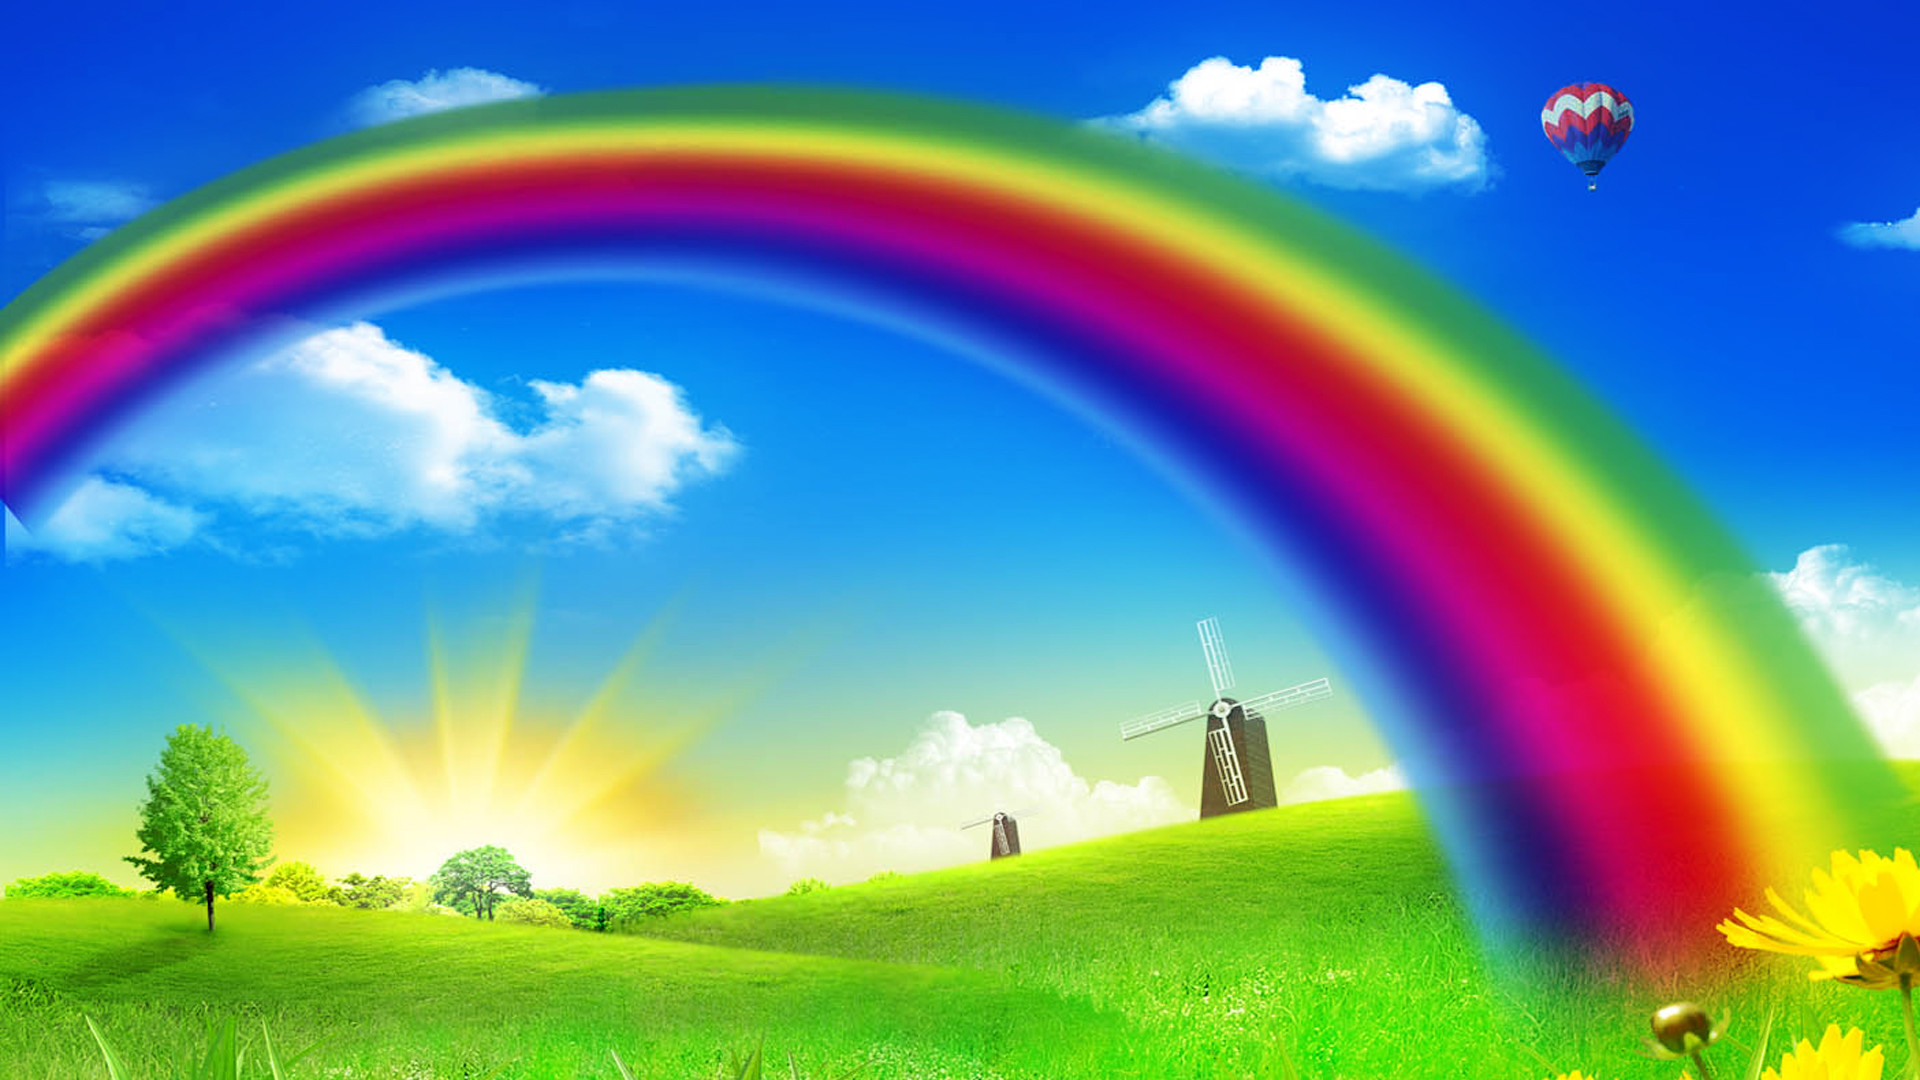 Res: 1920x1080, Rainbow Wallpaper